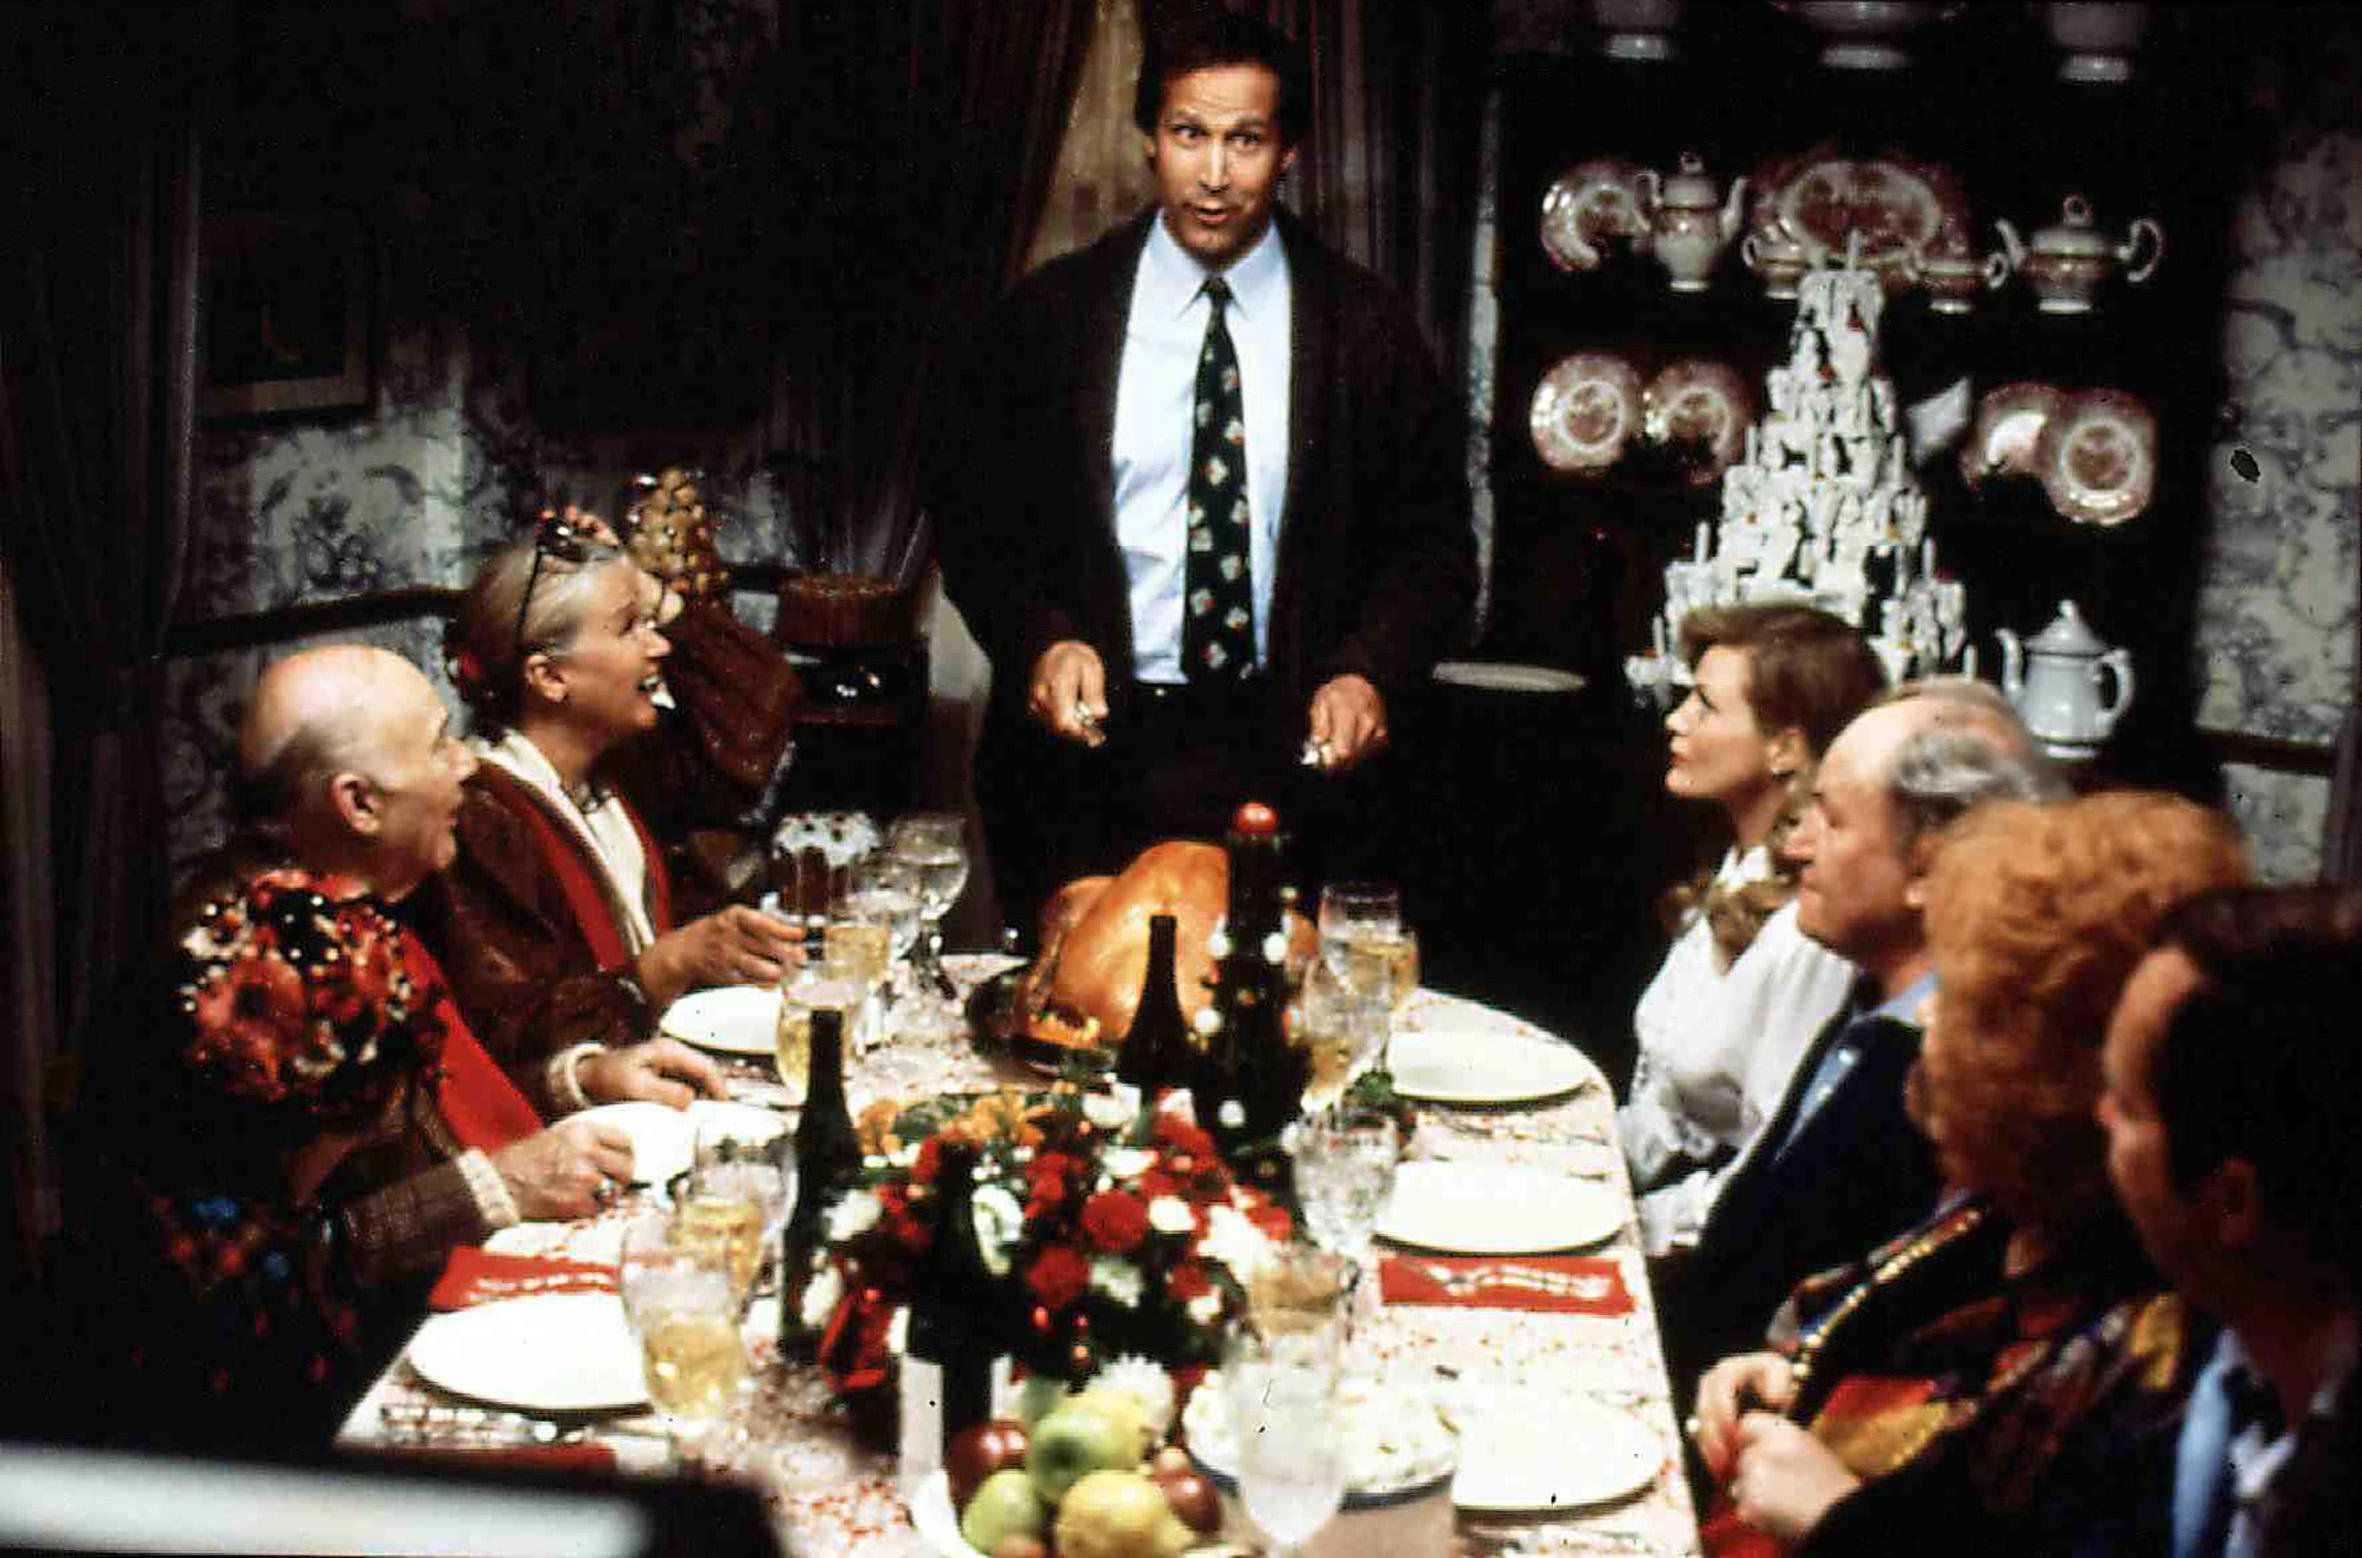 Clark Griswold (Chevy Chase) prepares for yet another disappointing holiday event.